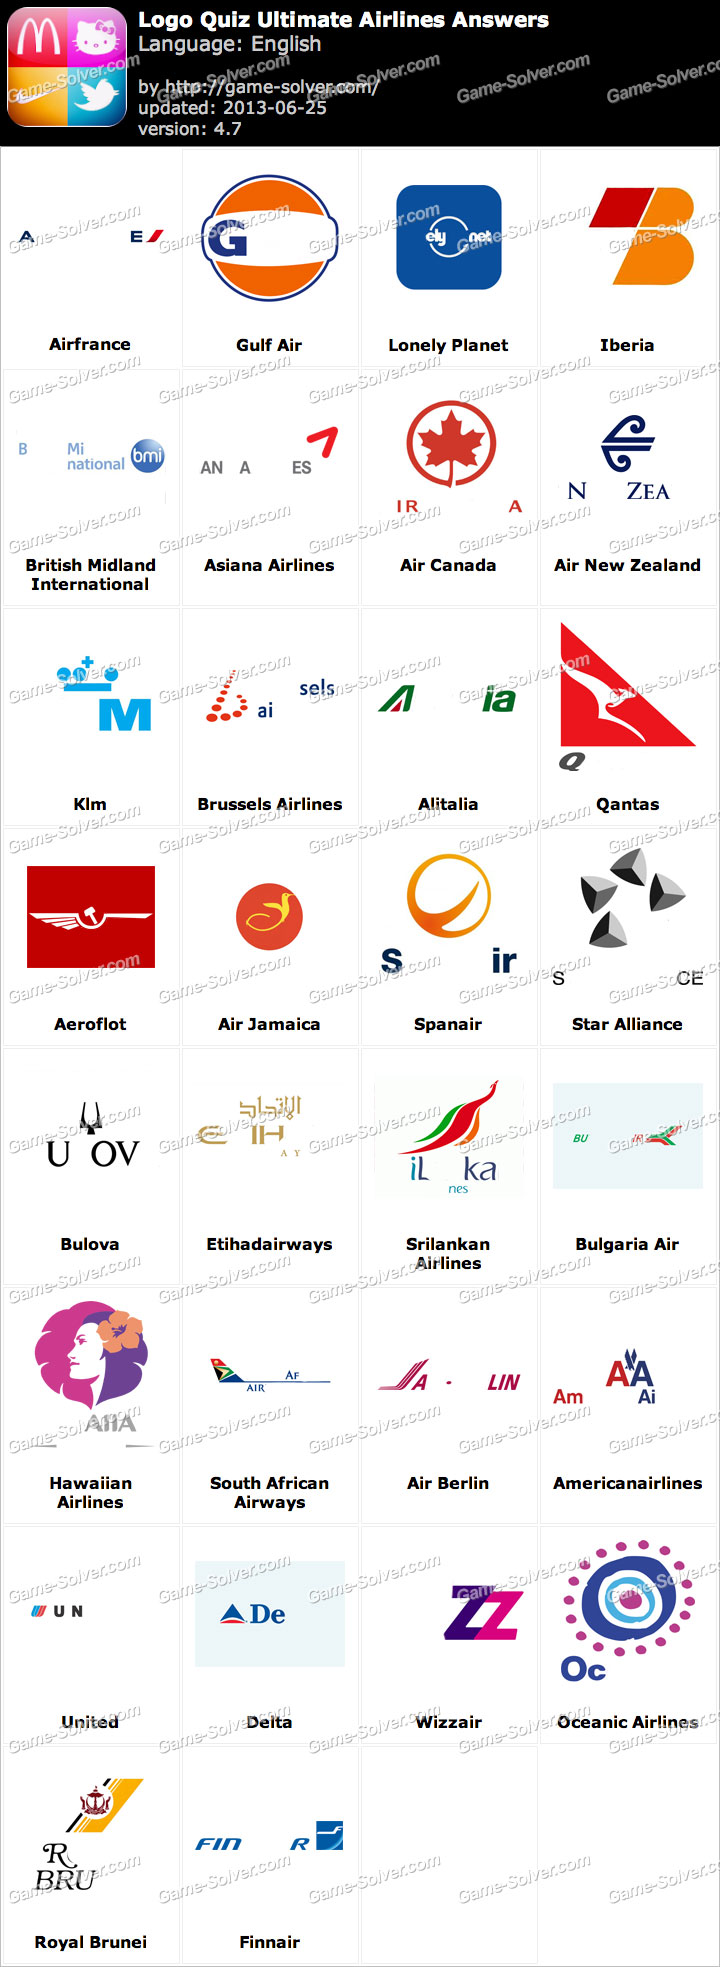 Logo Quiz Ultimate Airlines Answers